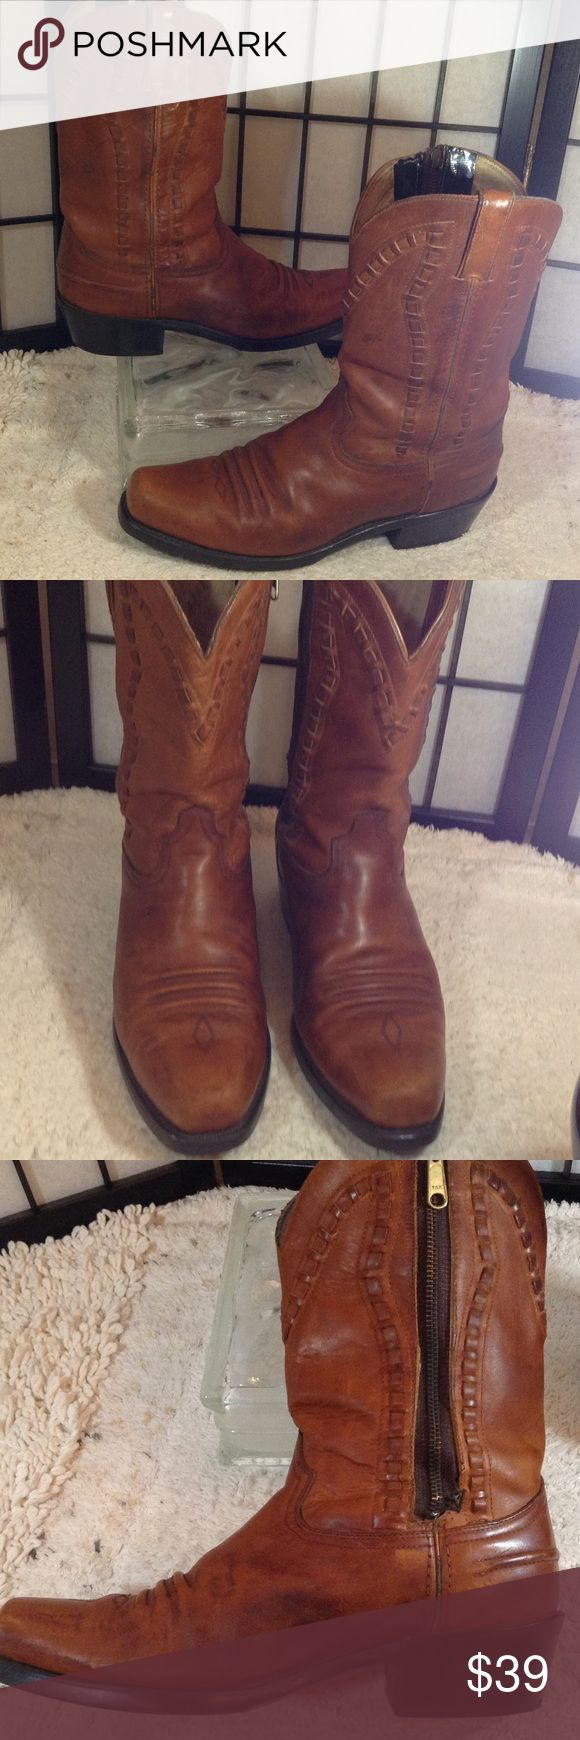 """Men's Durango leather boots Durango mottled dark tan distressed leather cowboy boots; 2"""" heel; 10"""" shaft; size 10.5EE extra wide; some scuffing; zipper has been replaced; see pictures; still great looking boots Durango Shoes Cowboy & Western Boots"""